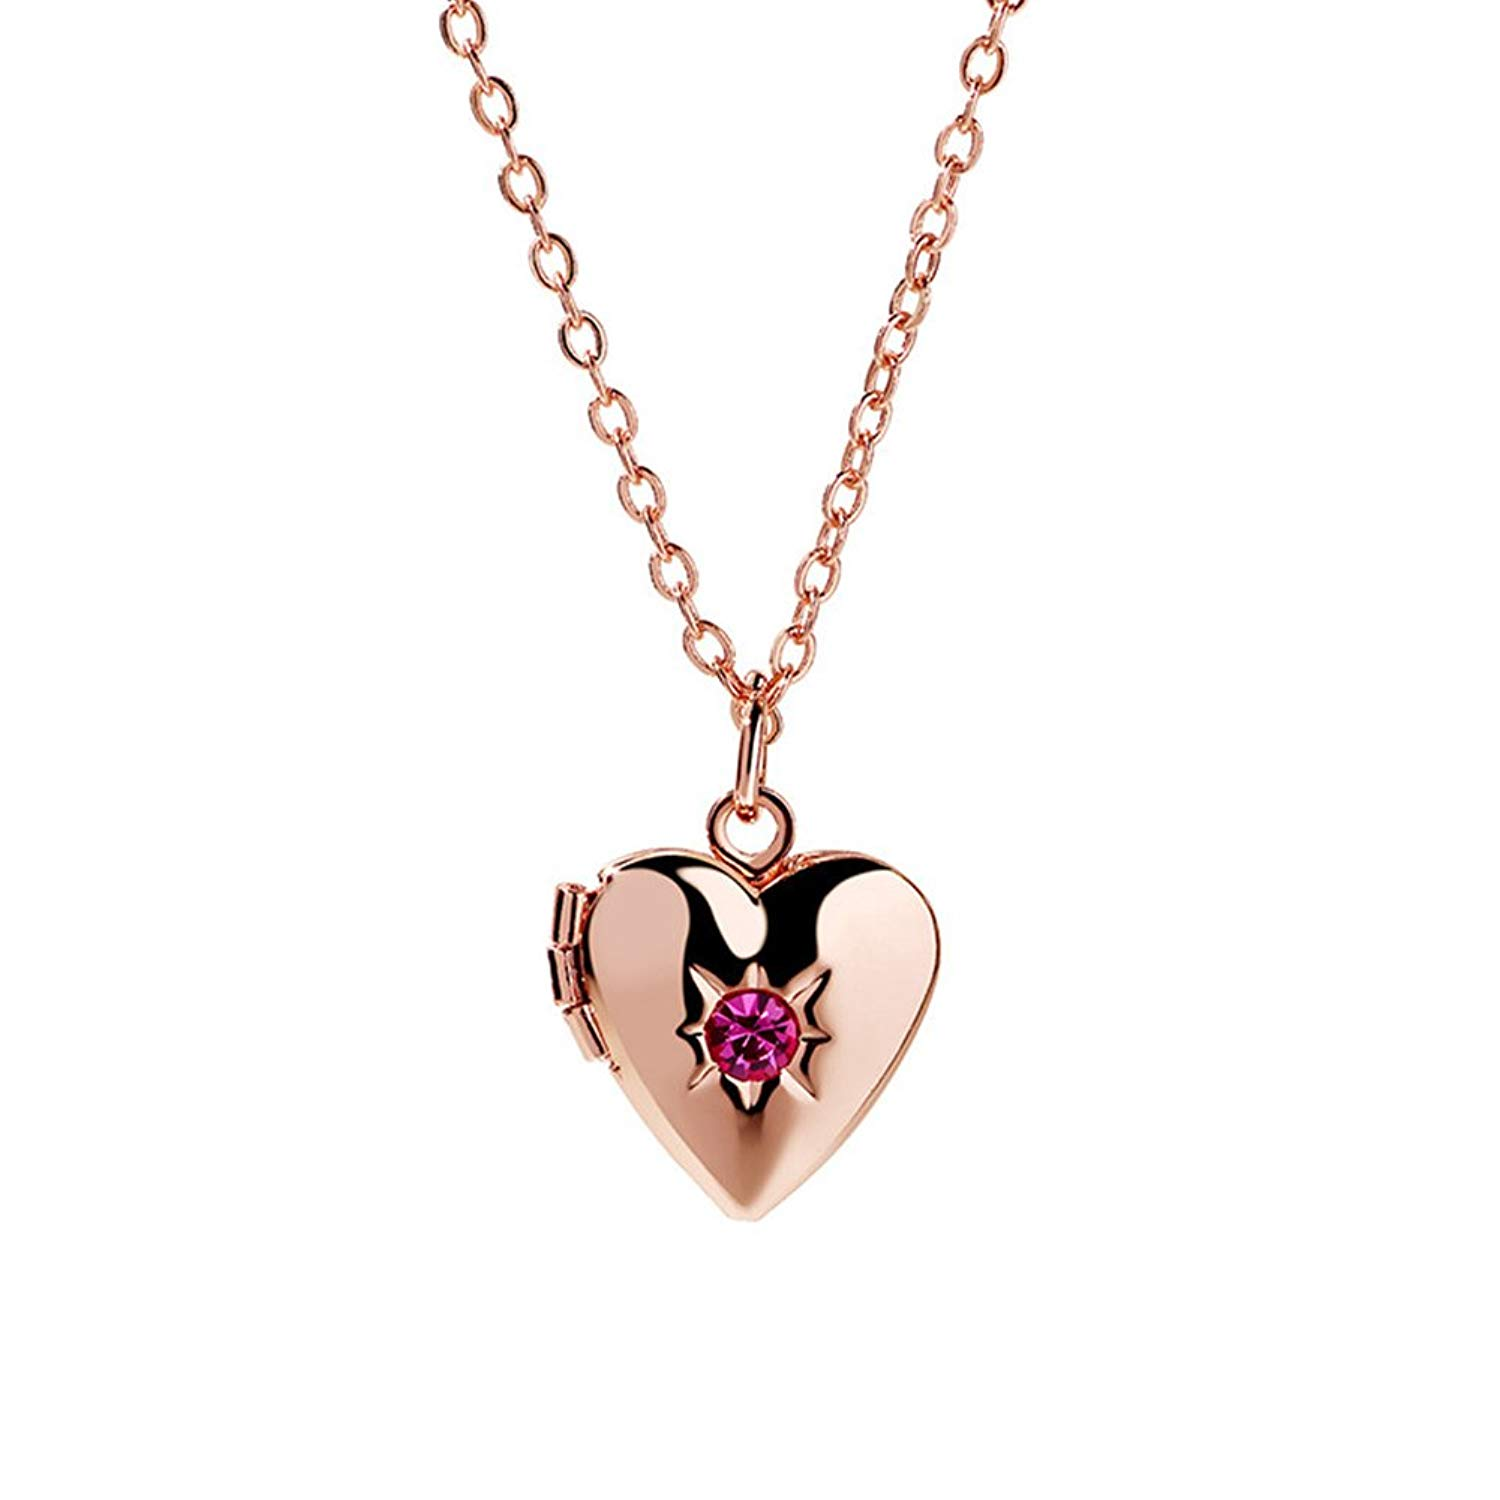 PORPI-JOJO Lockets for Women Rose Gold Tone Pink CZ,Locket Necklace that Holds Pictures Jewelry